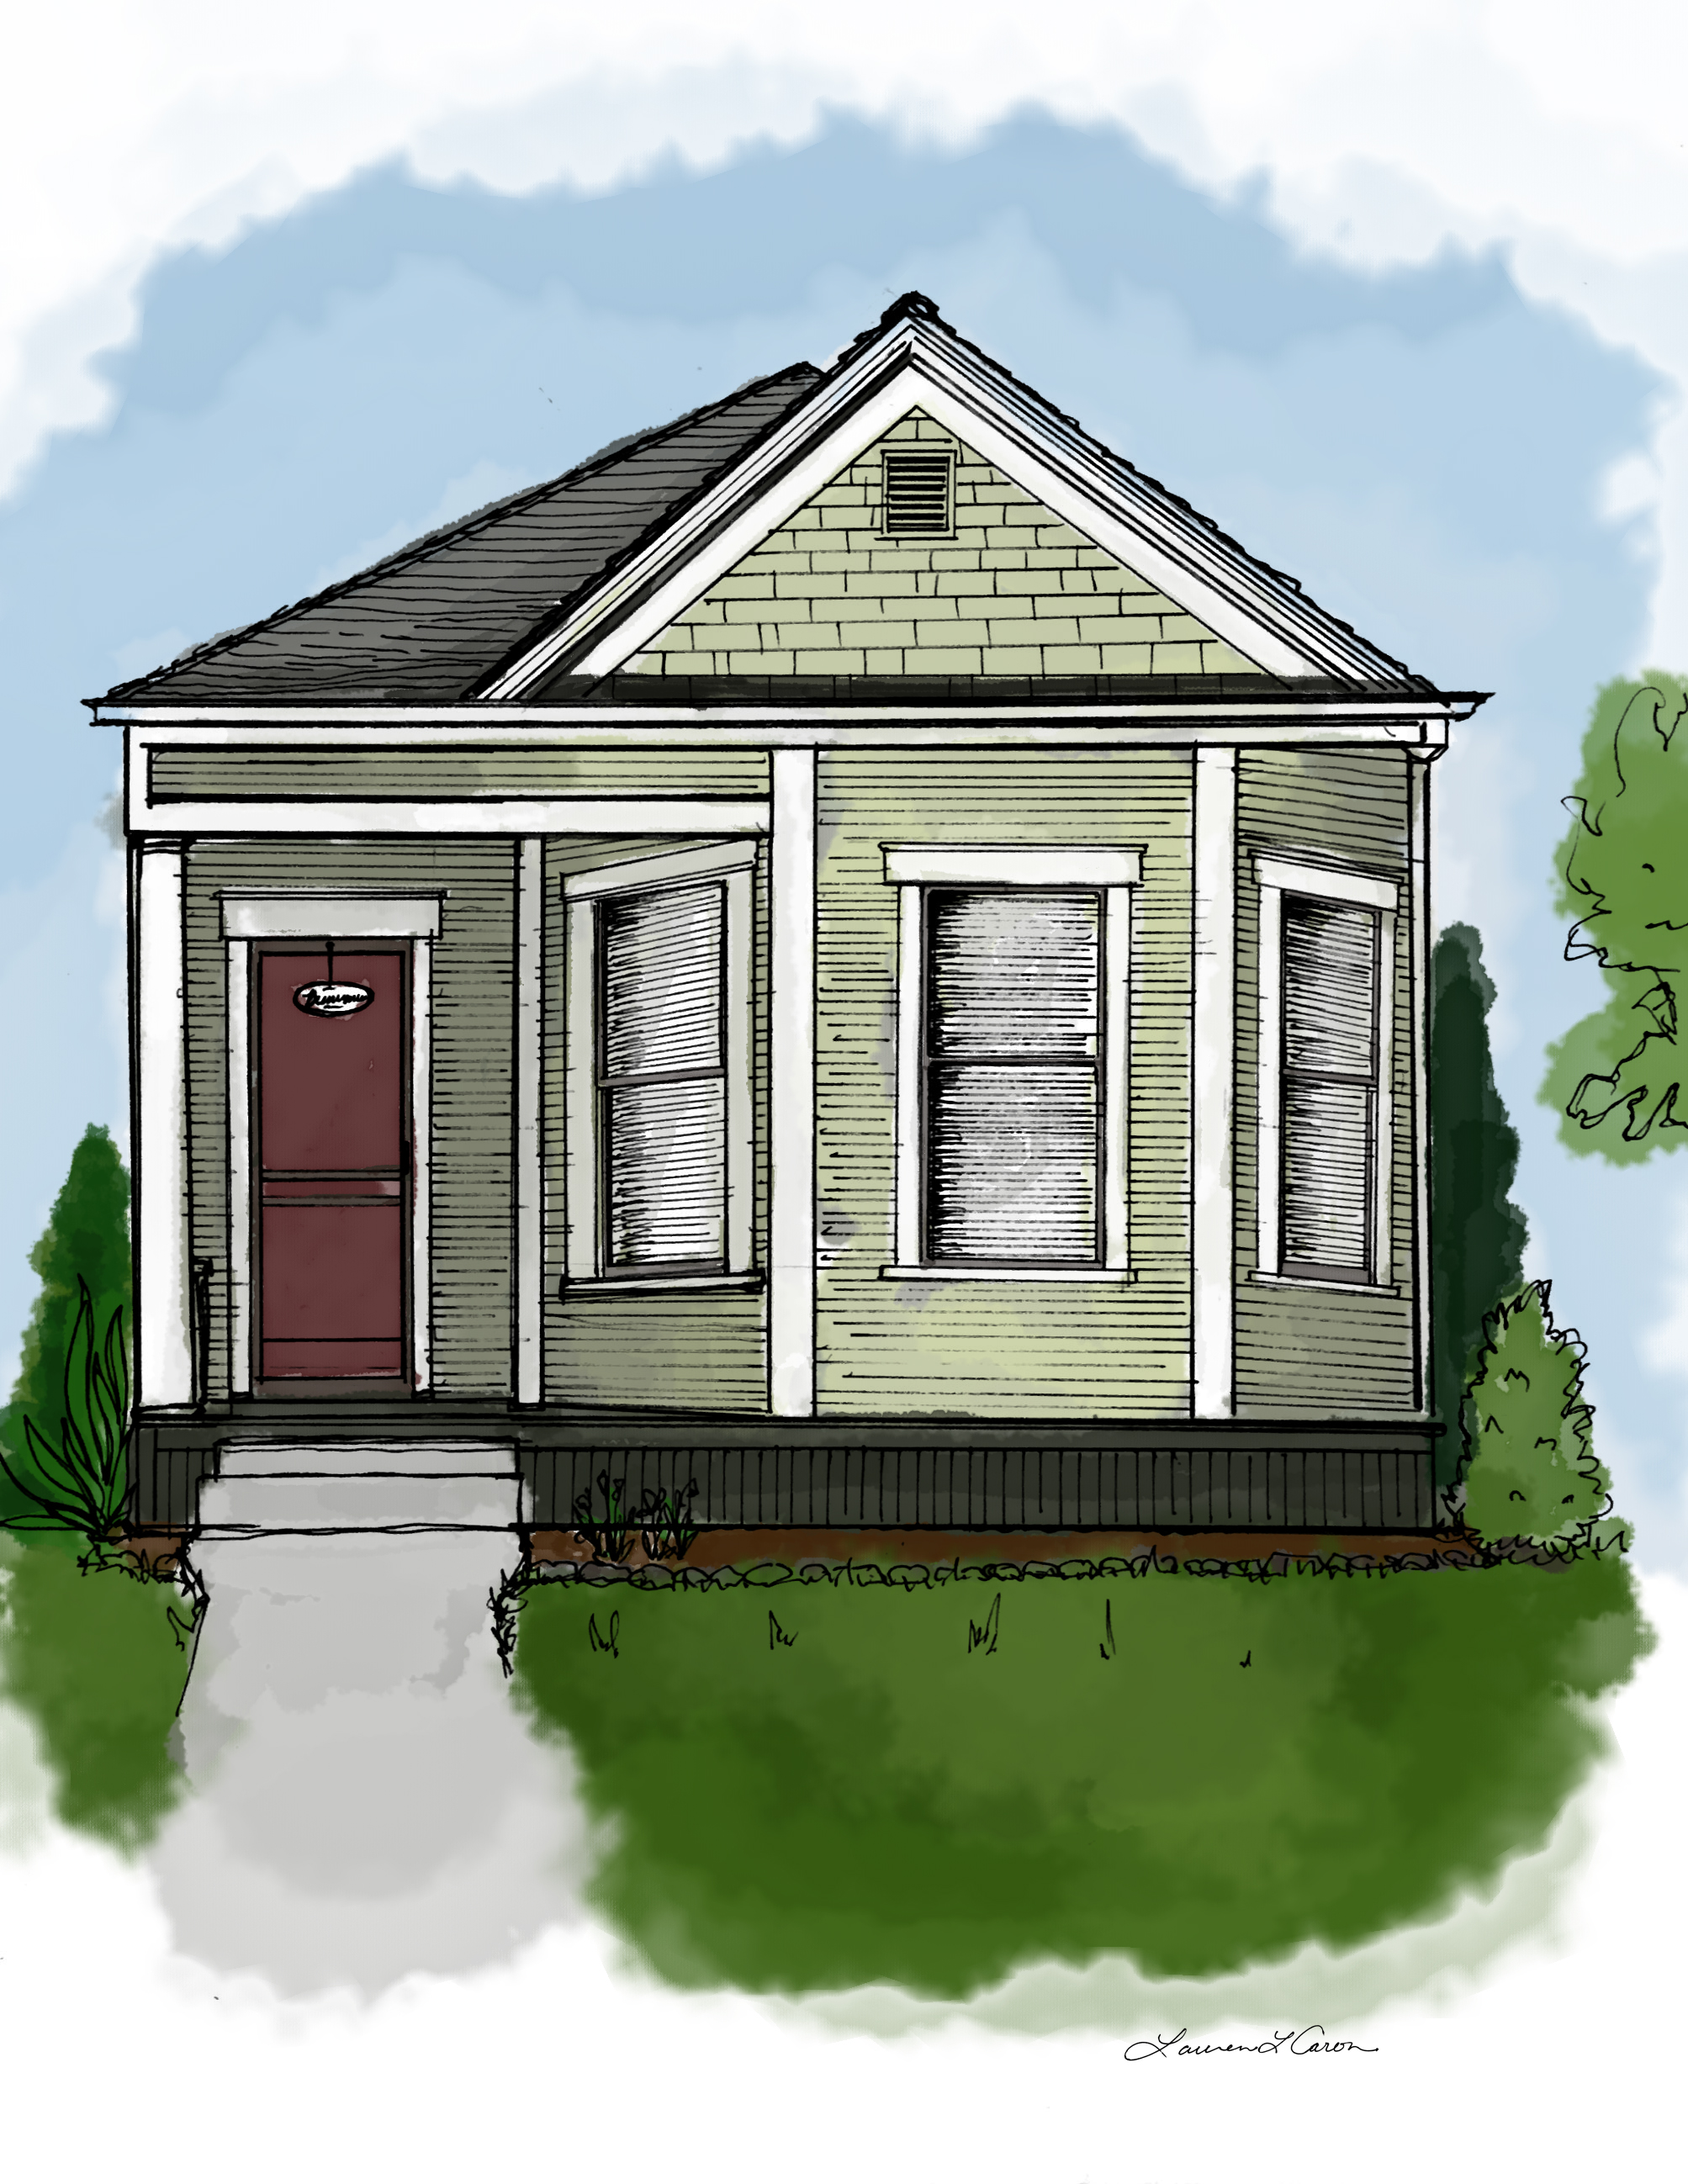 A sketch of our little house that I did this week when I couldn't be productive doing other work.